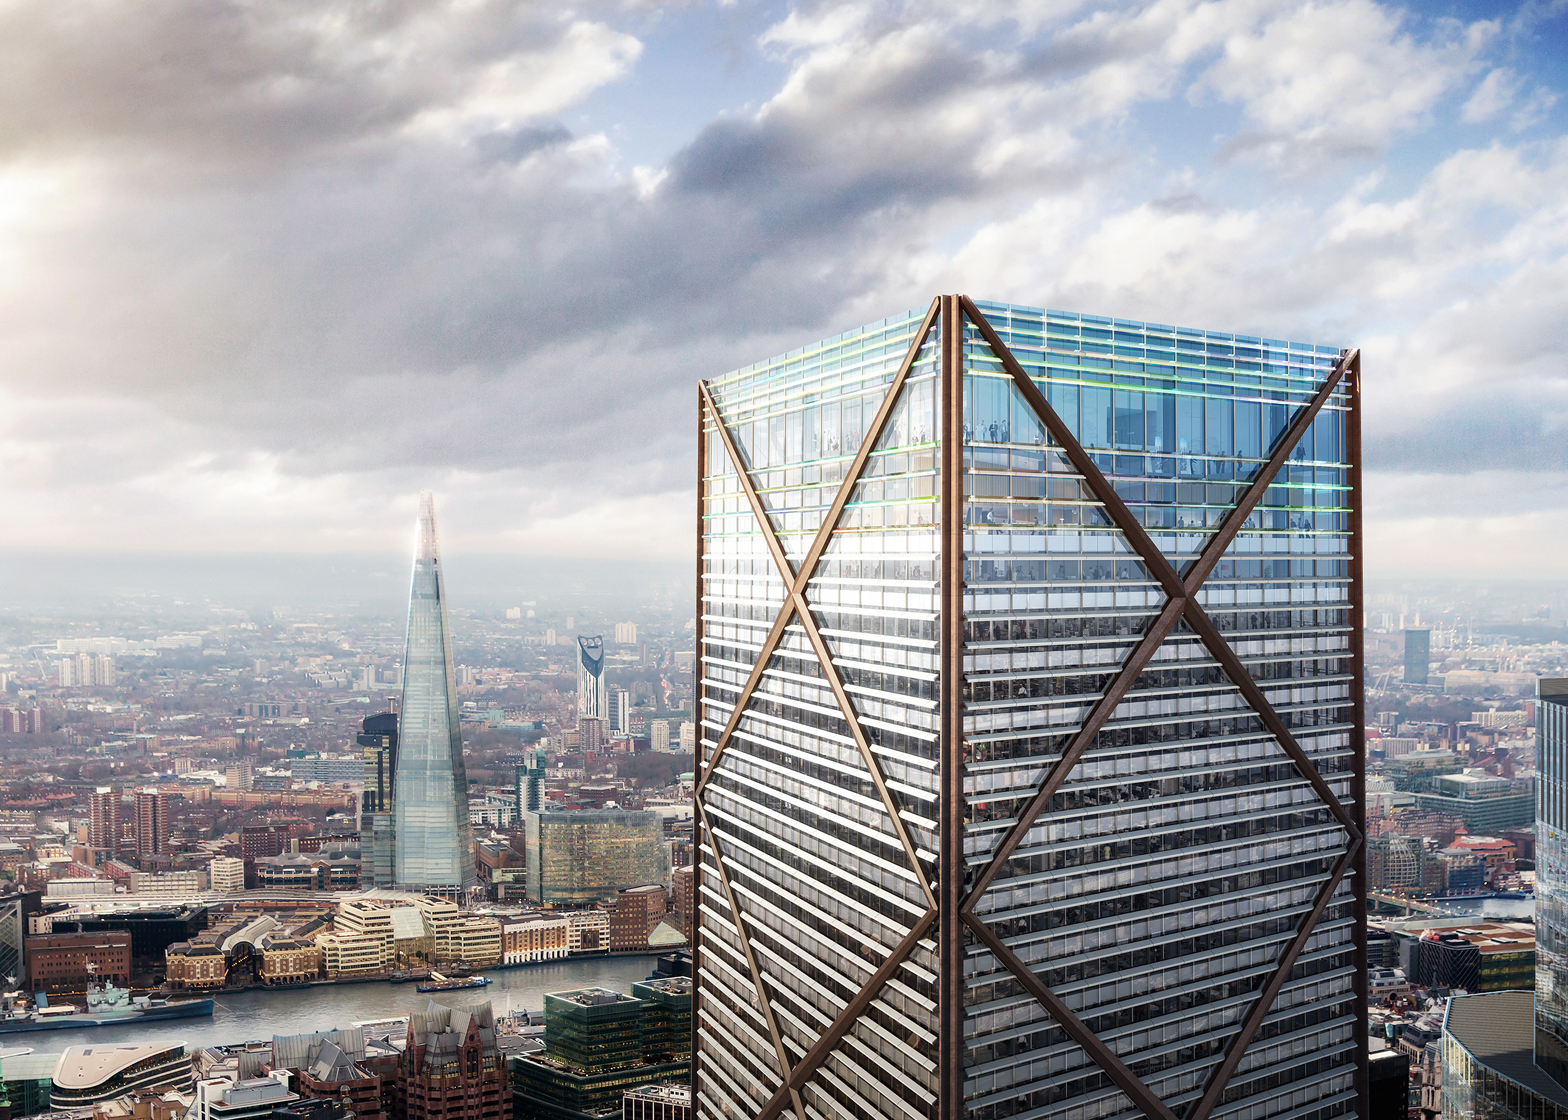 1 Undershaft skyscraper by Eric Parry Architects